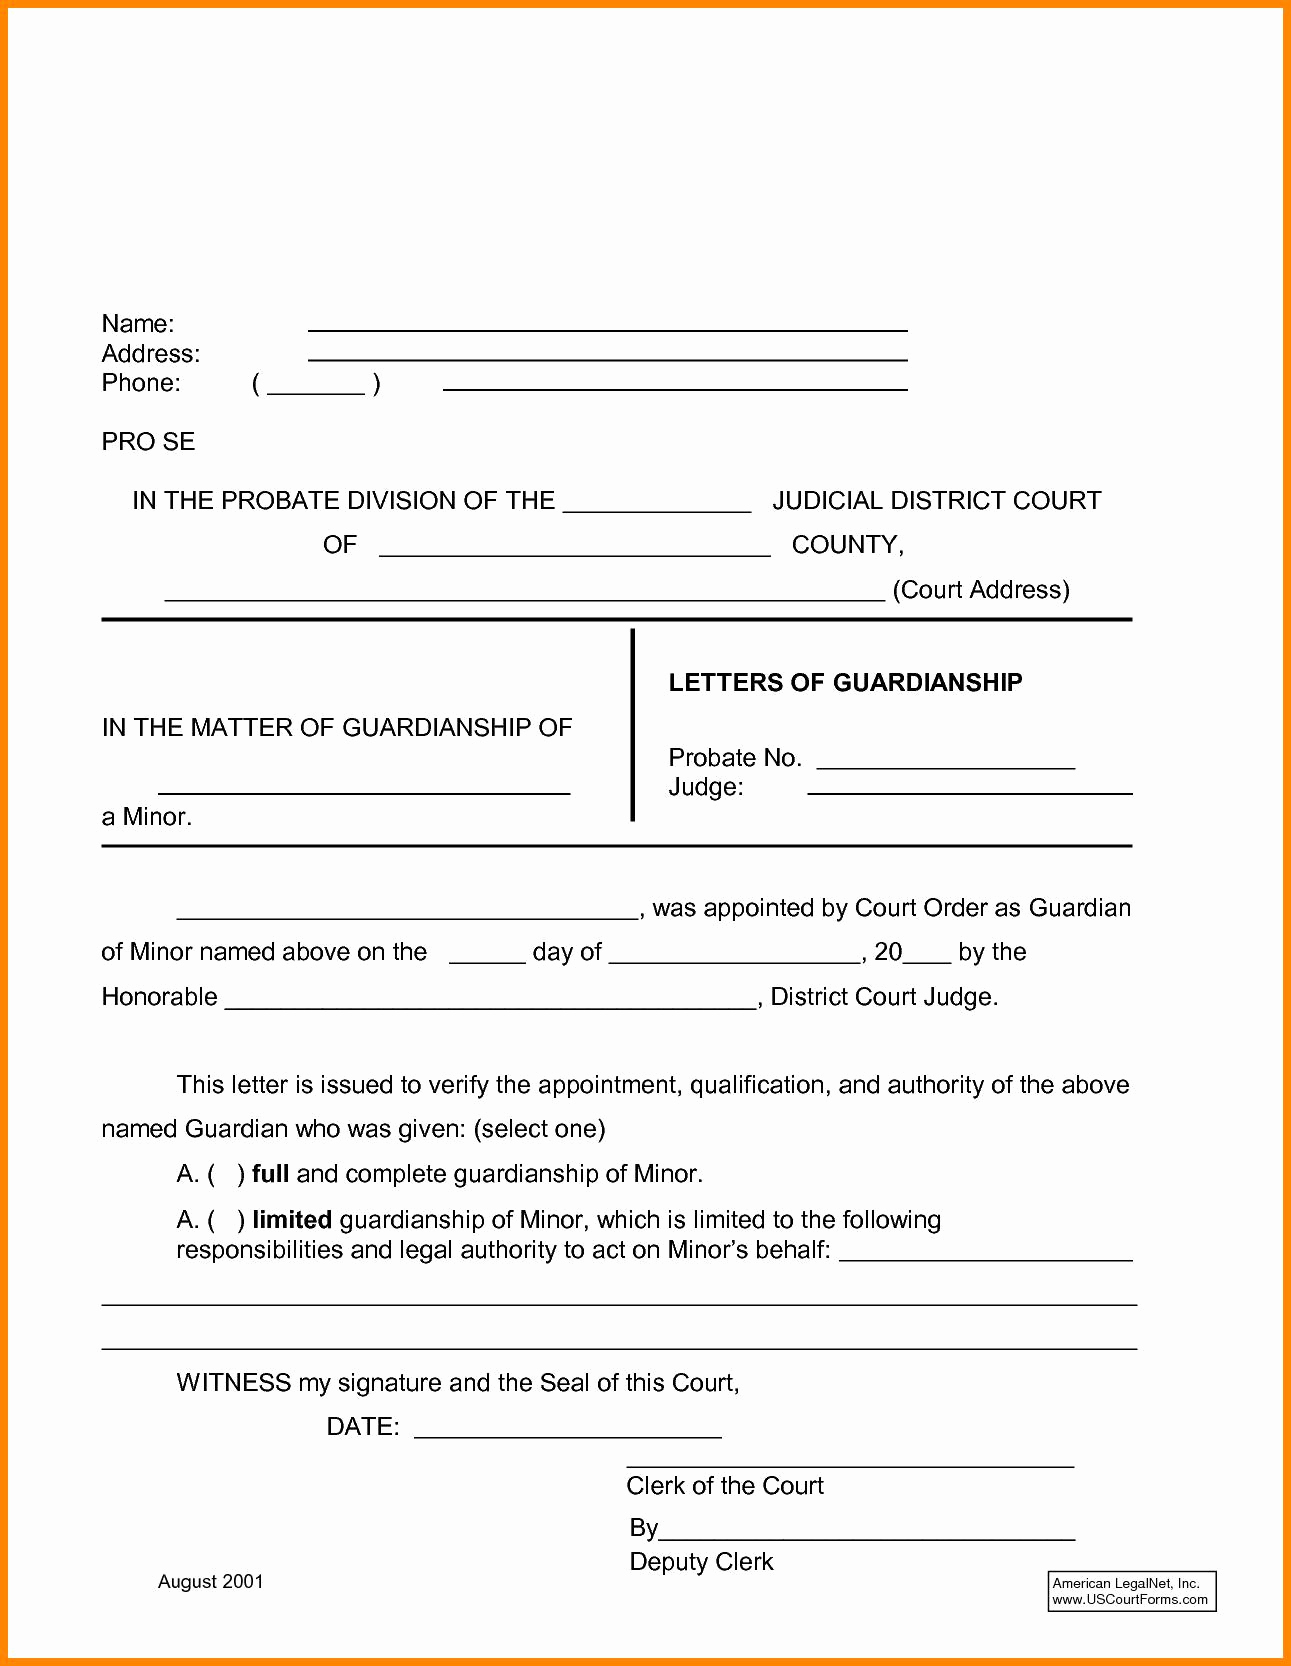 free temporary guardianship letter template example-Temporary Guardianship Agreement form Temporary Custody Letter Template Elegant Child Custody Agreement 5-k